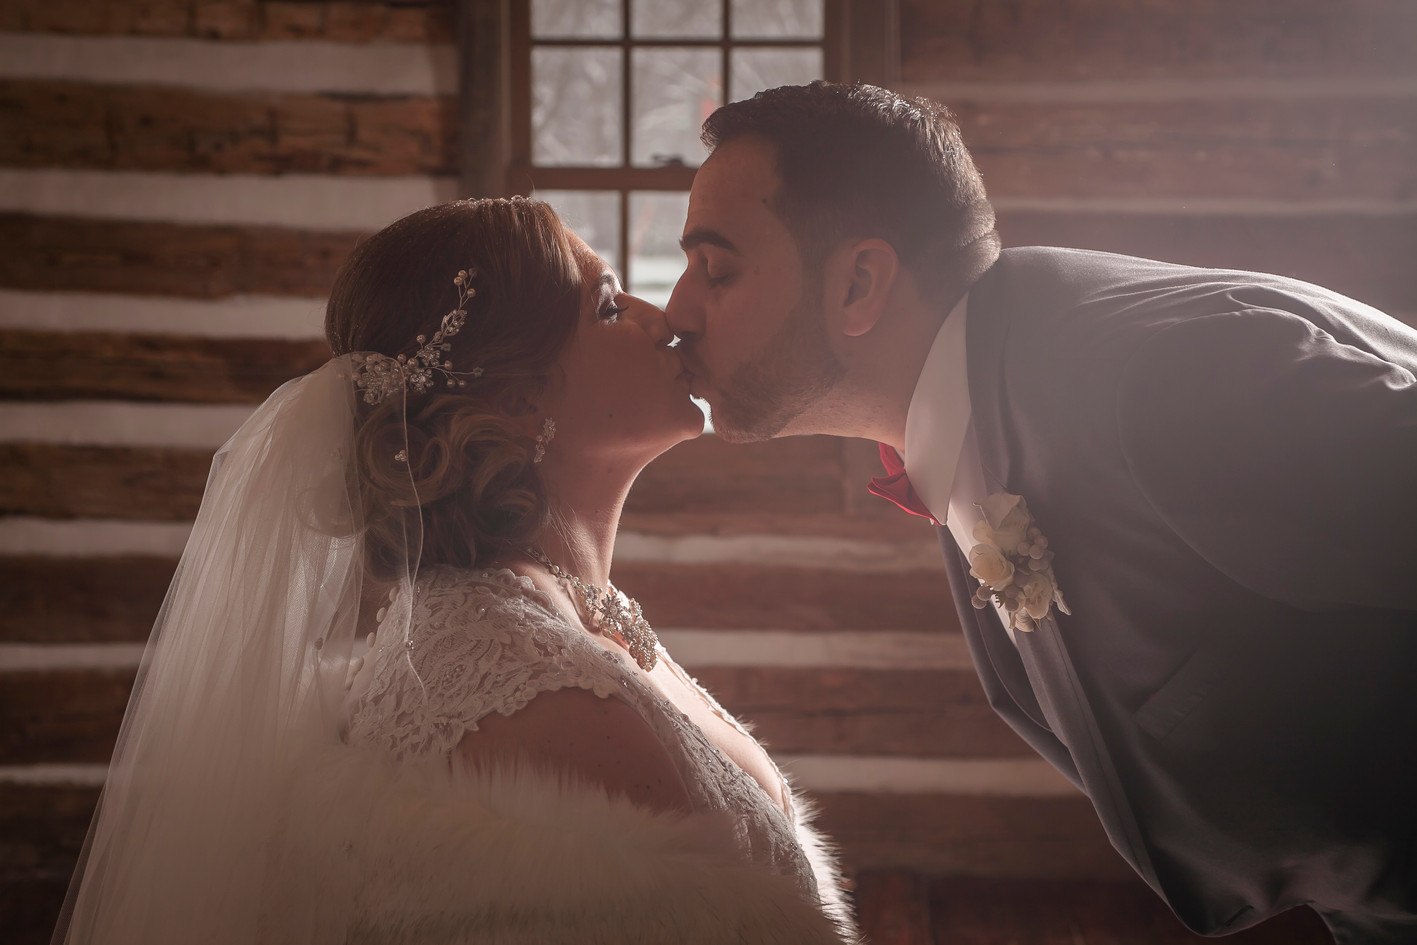 Husband and wife share a kiss in an old cabin with sunlight shining through.